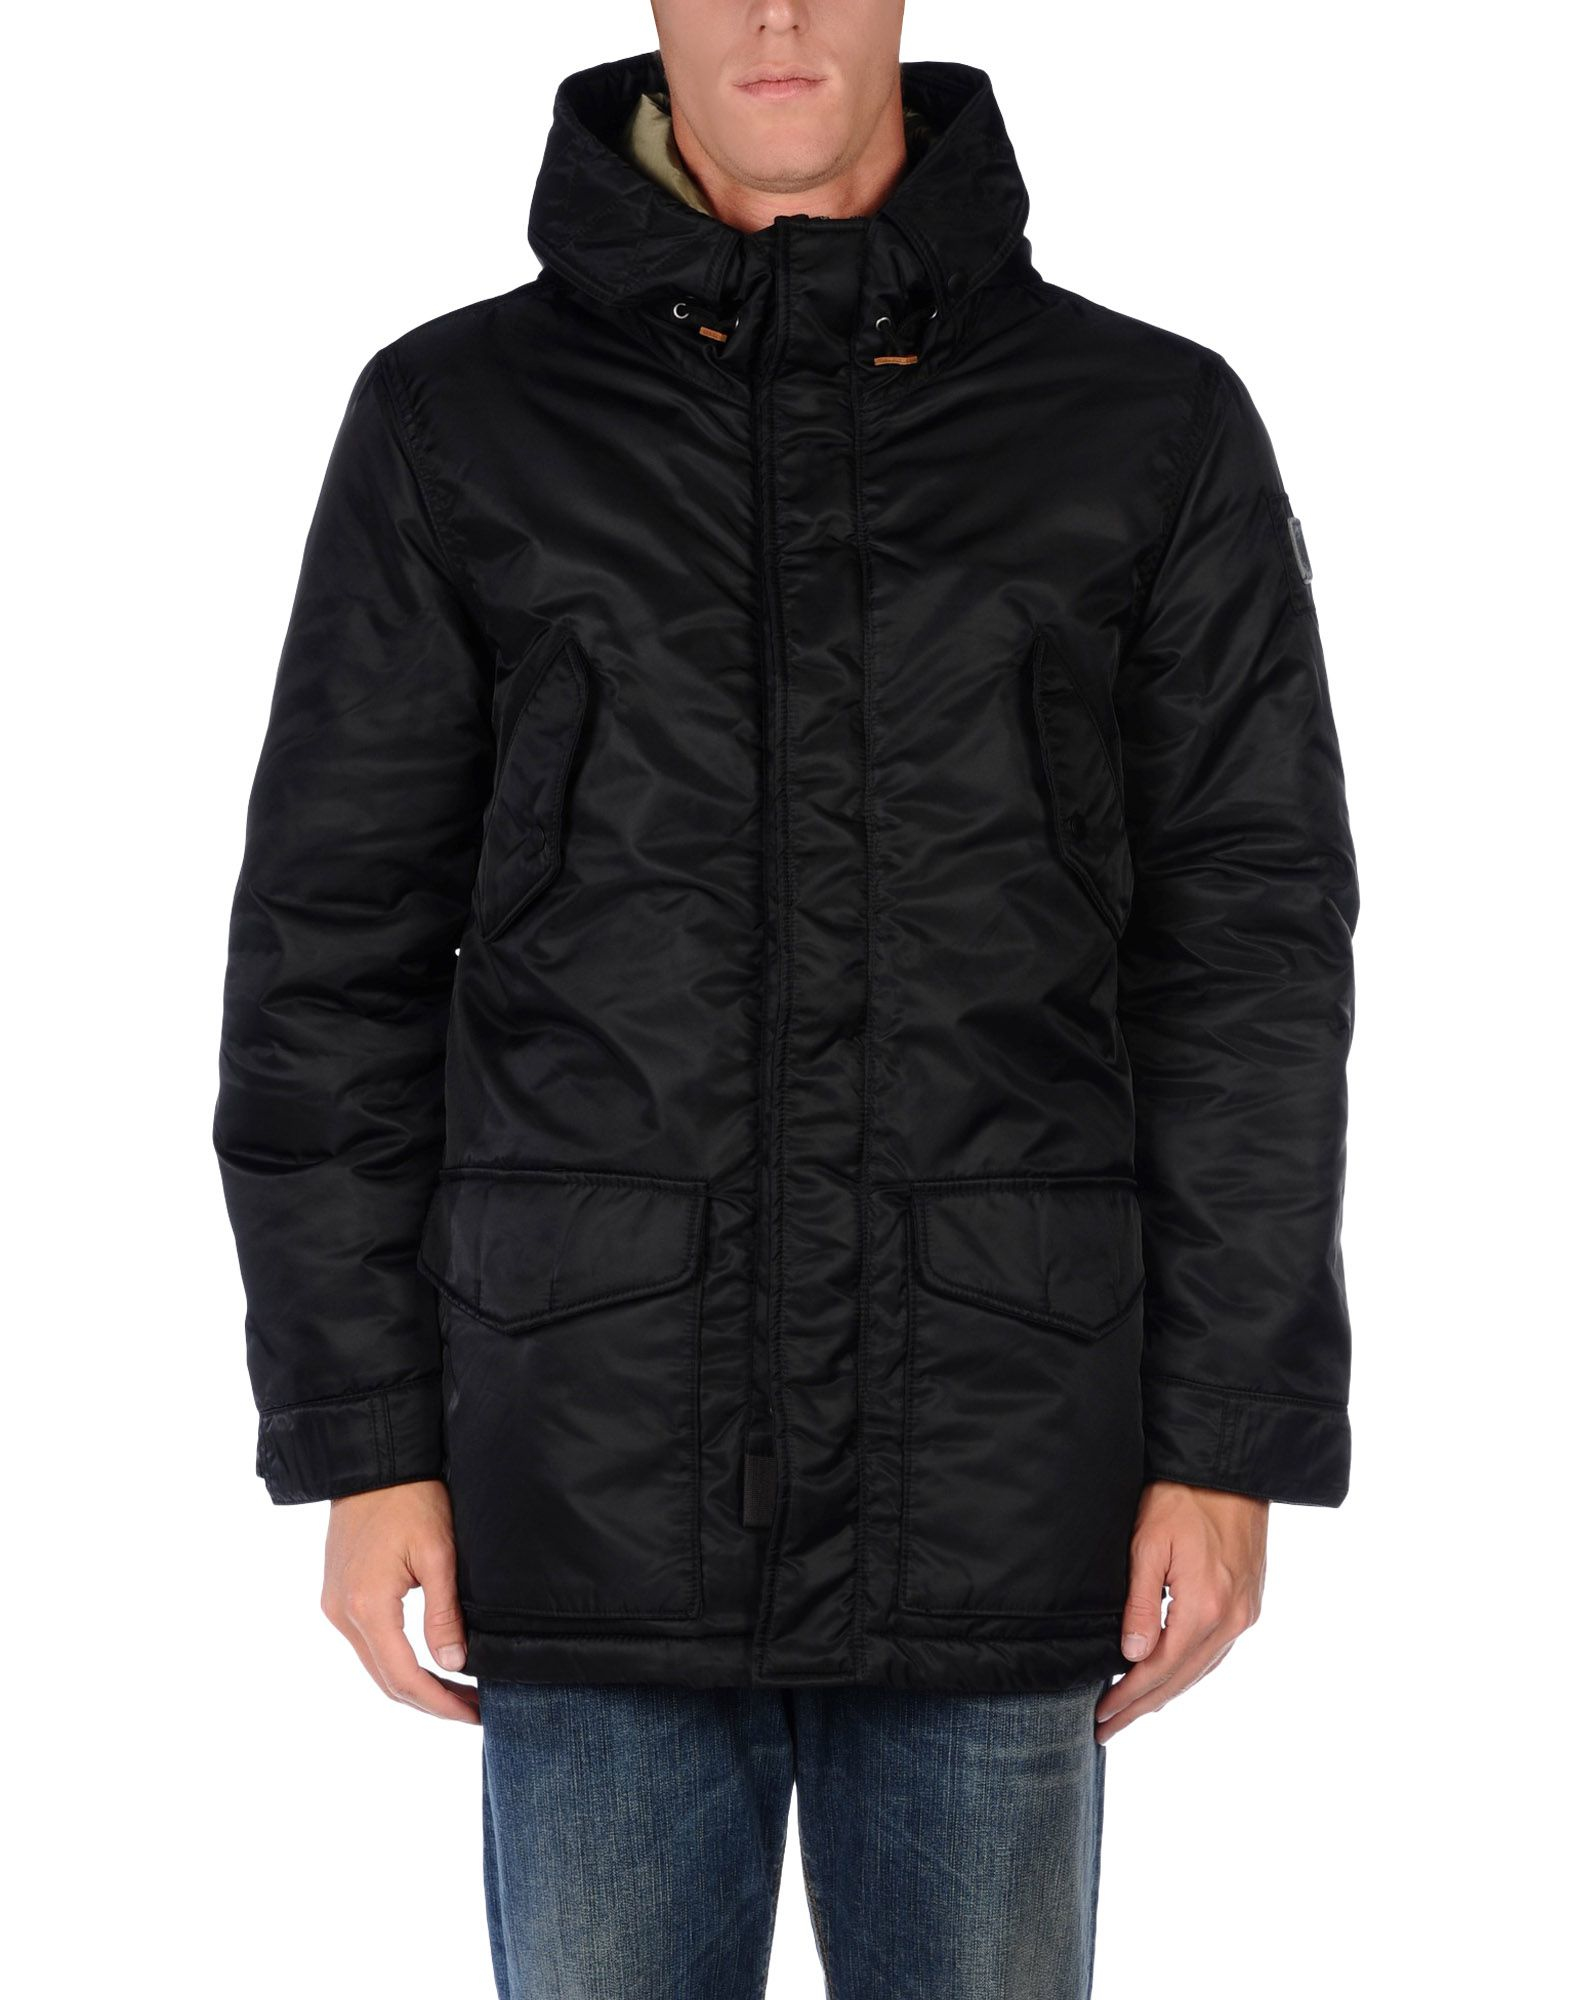 lyst replay jacket in black for men